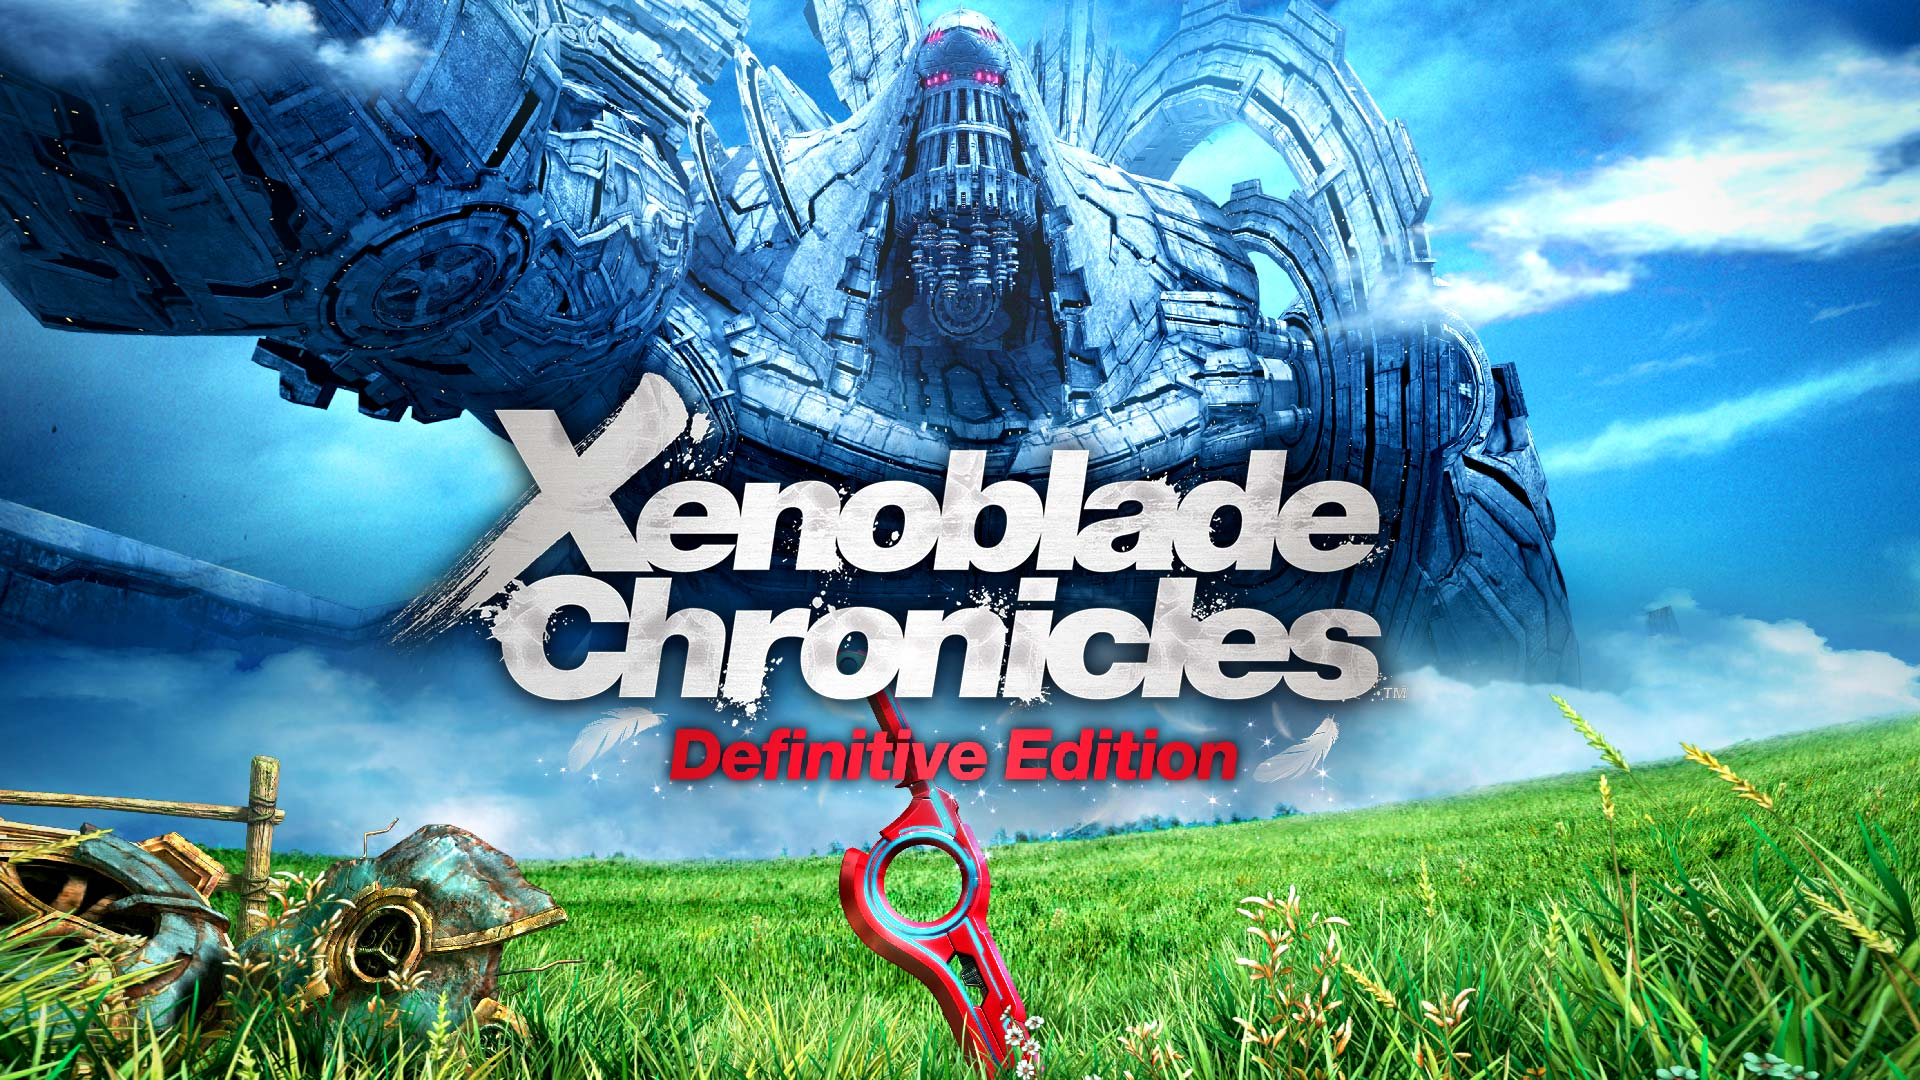 xenoblade chronicles, revive teammates